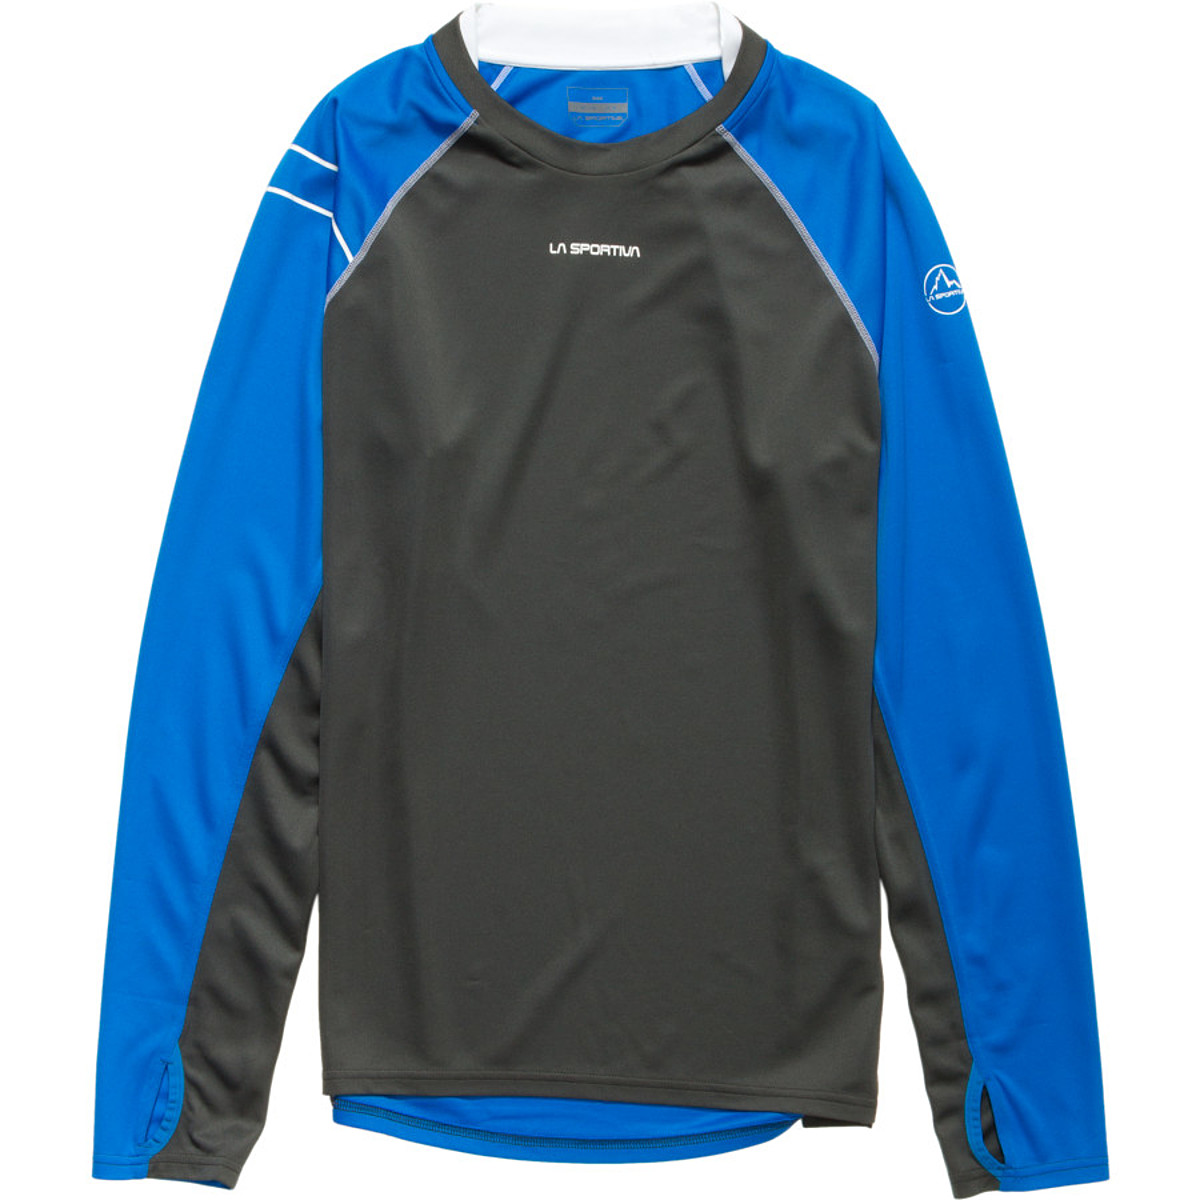 La Sportiva Epic Long Sleeve T-Shirt